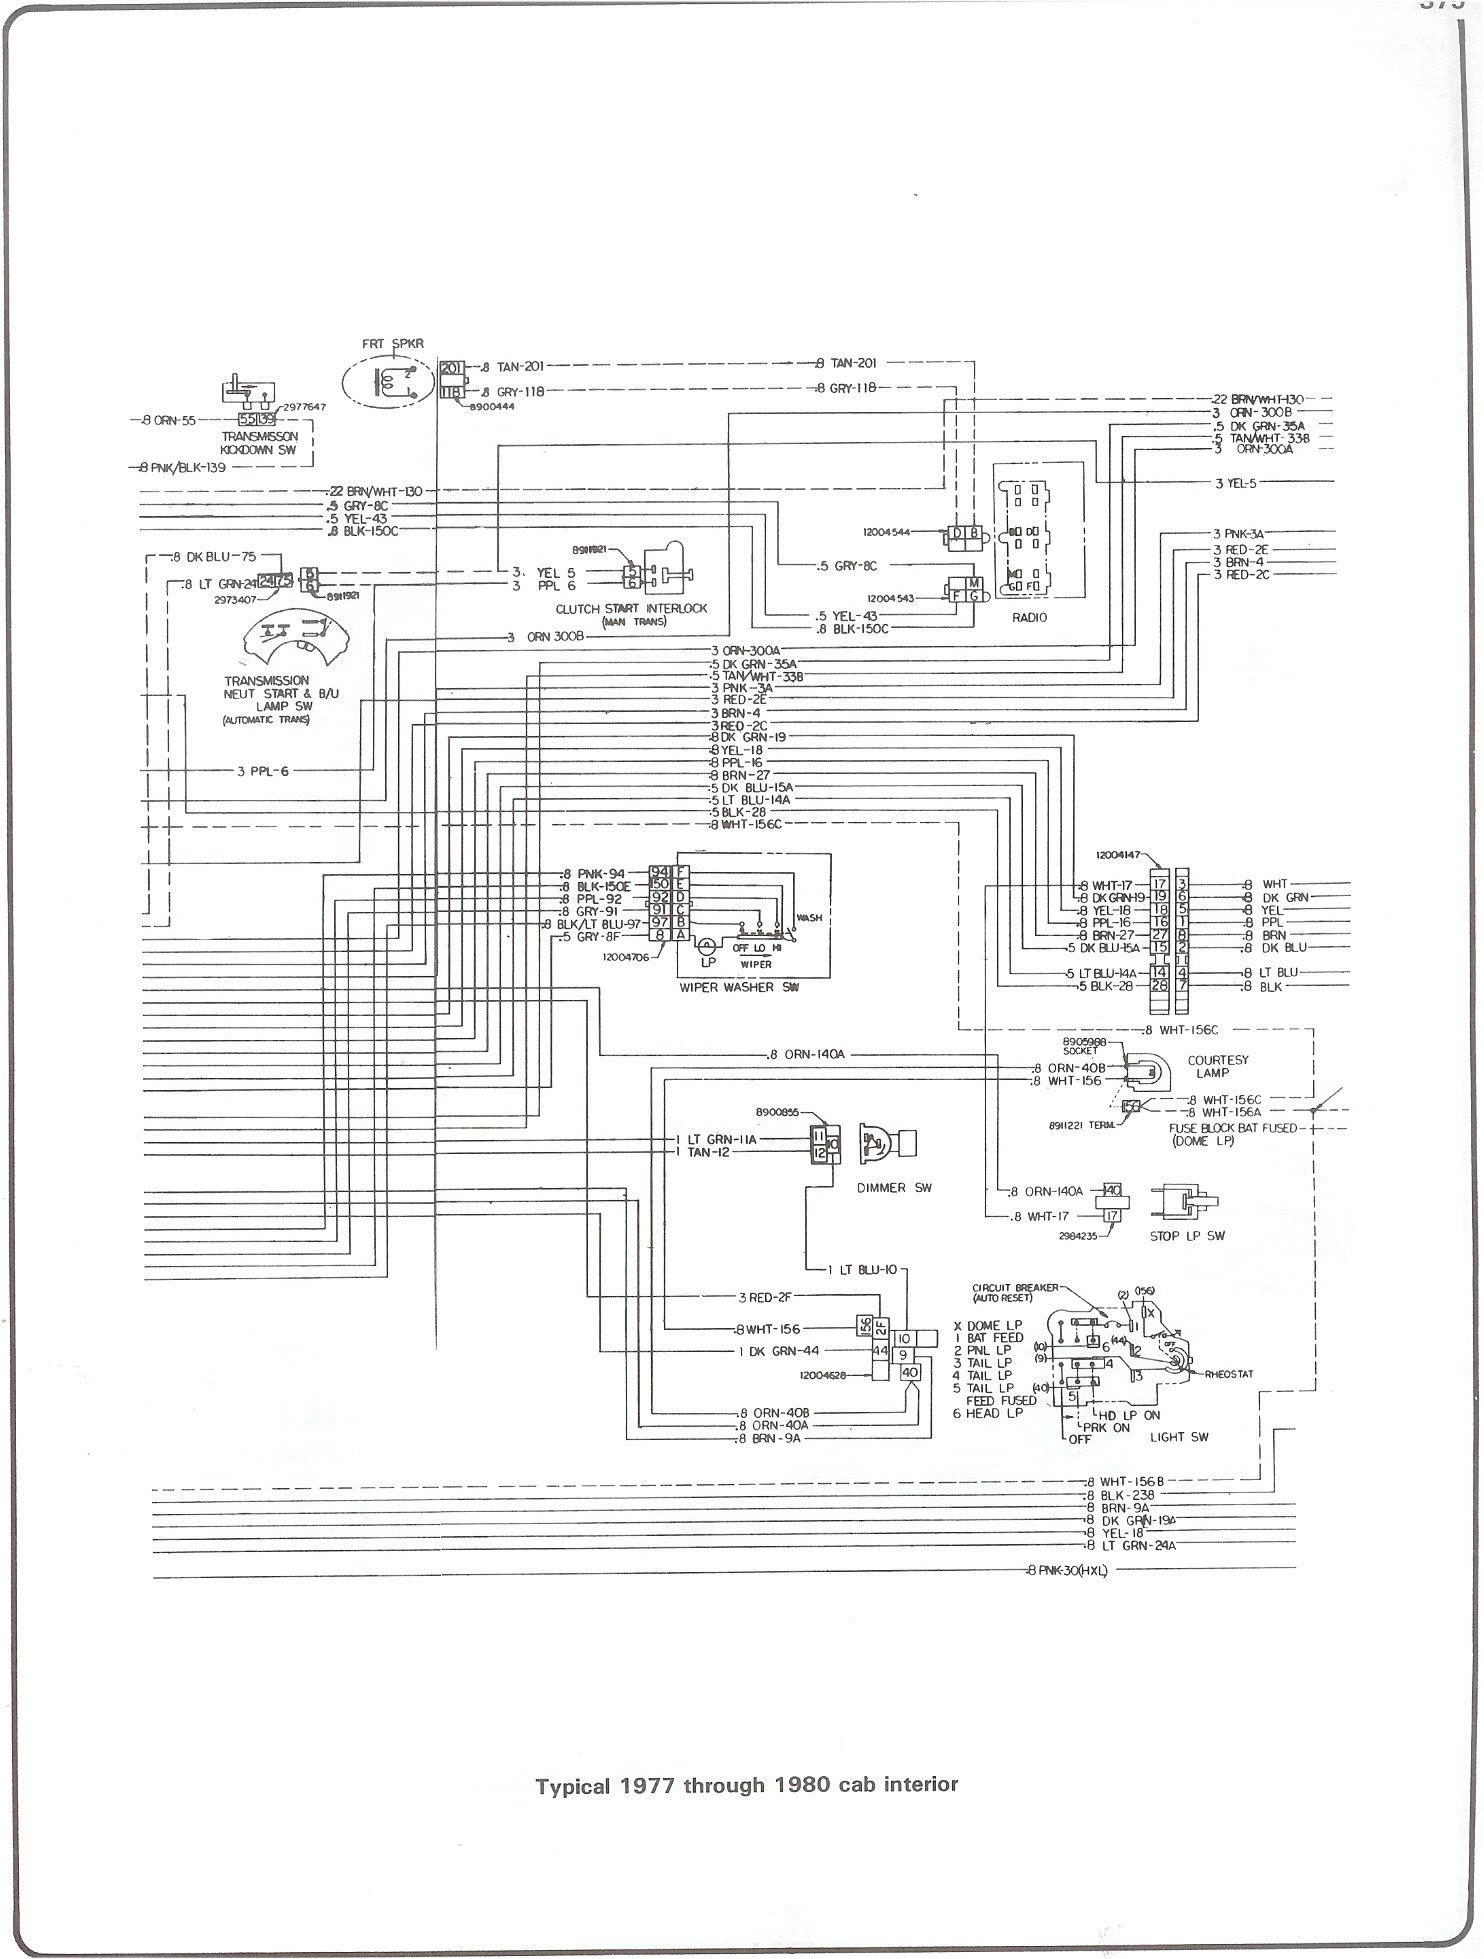 1967 Nova Column Wiring Diagram Beachcomber Hot Tub Wiring Diagram Doorchime Kdx 200 Jeanjaures37 Fr